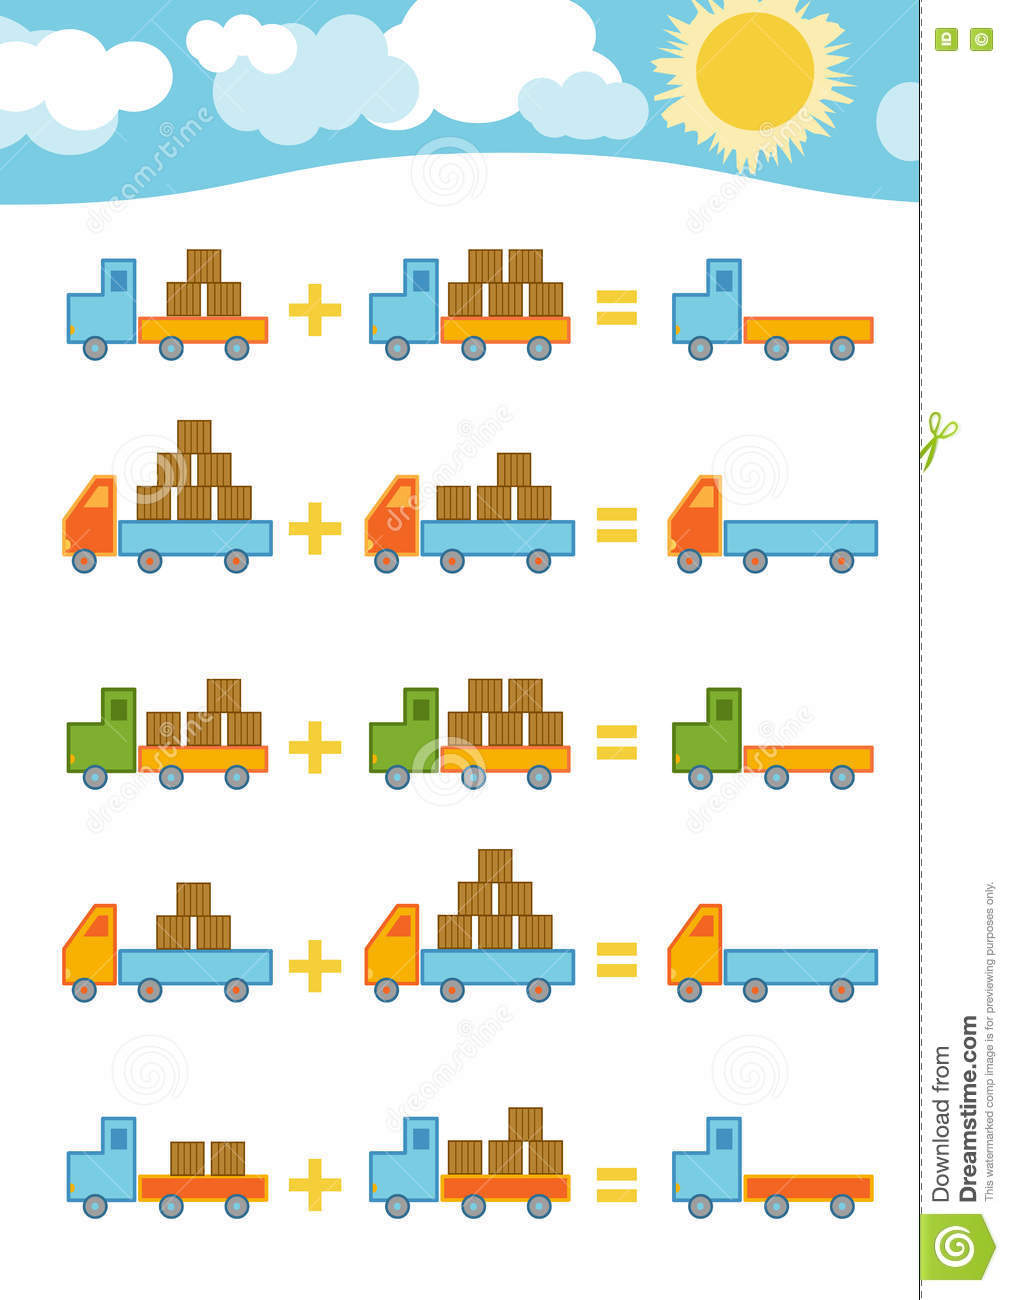 hight resolution of Counting Game For Children. Addition Worksheets Stock Vector - Illustration  of graphic